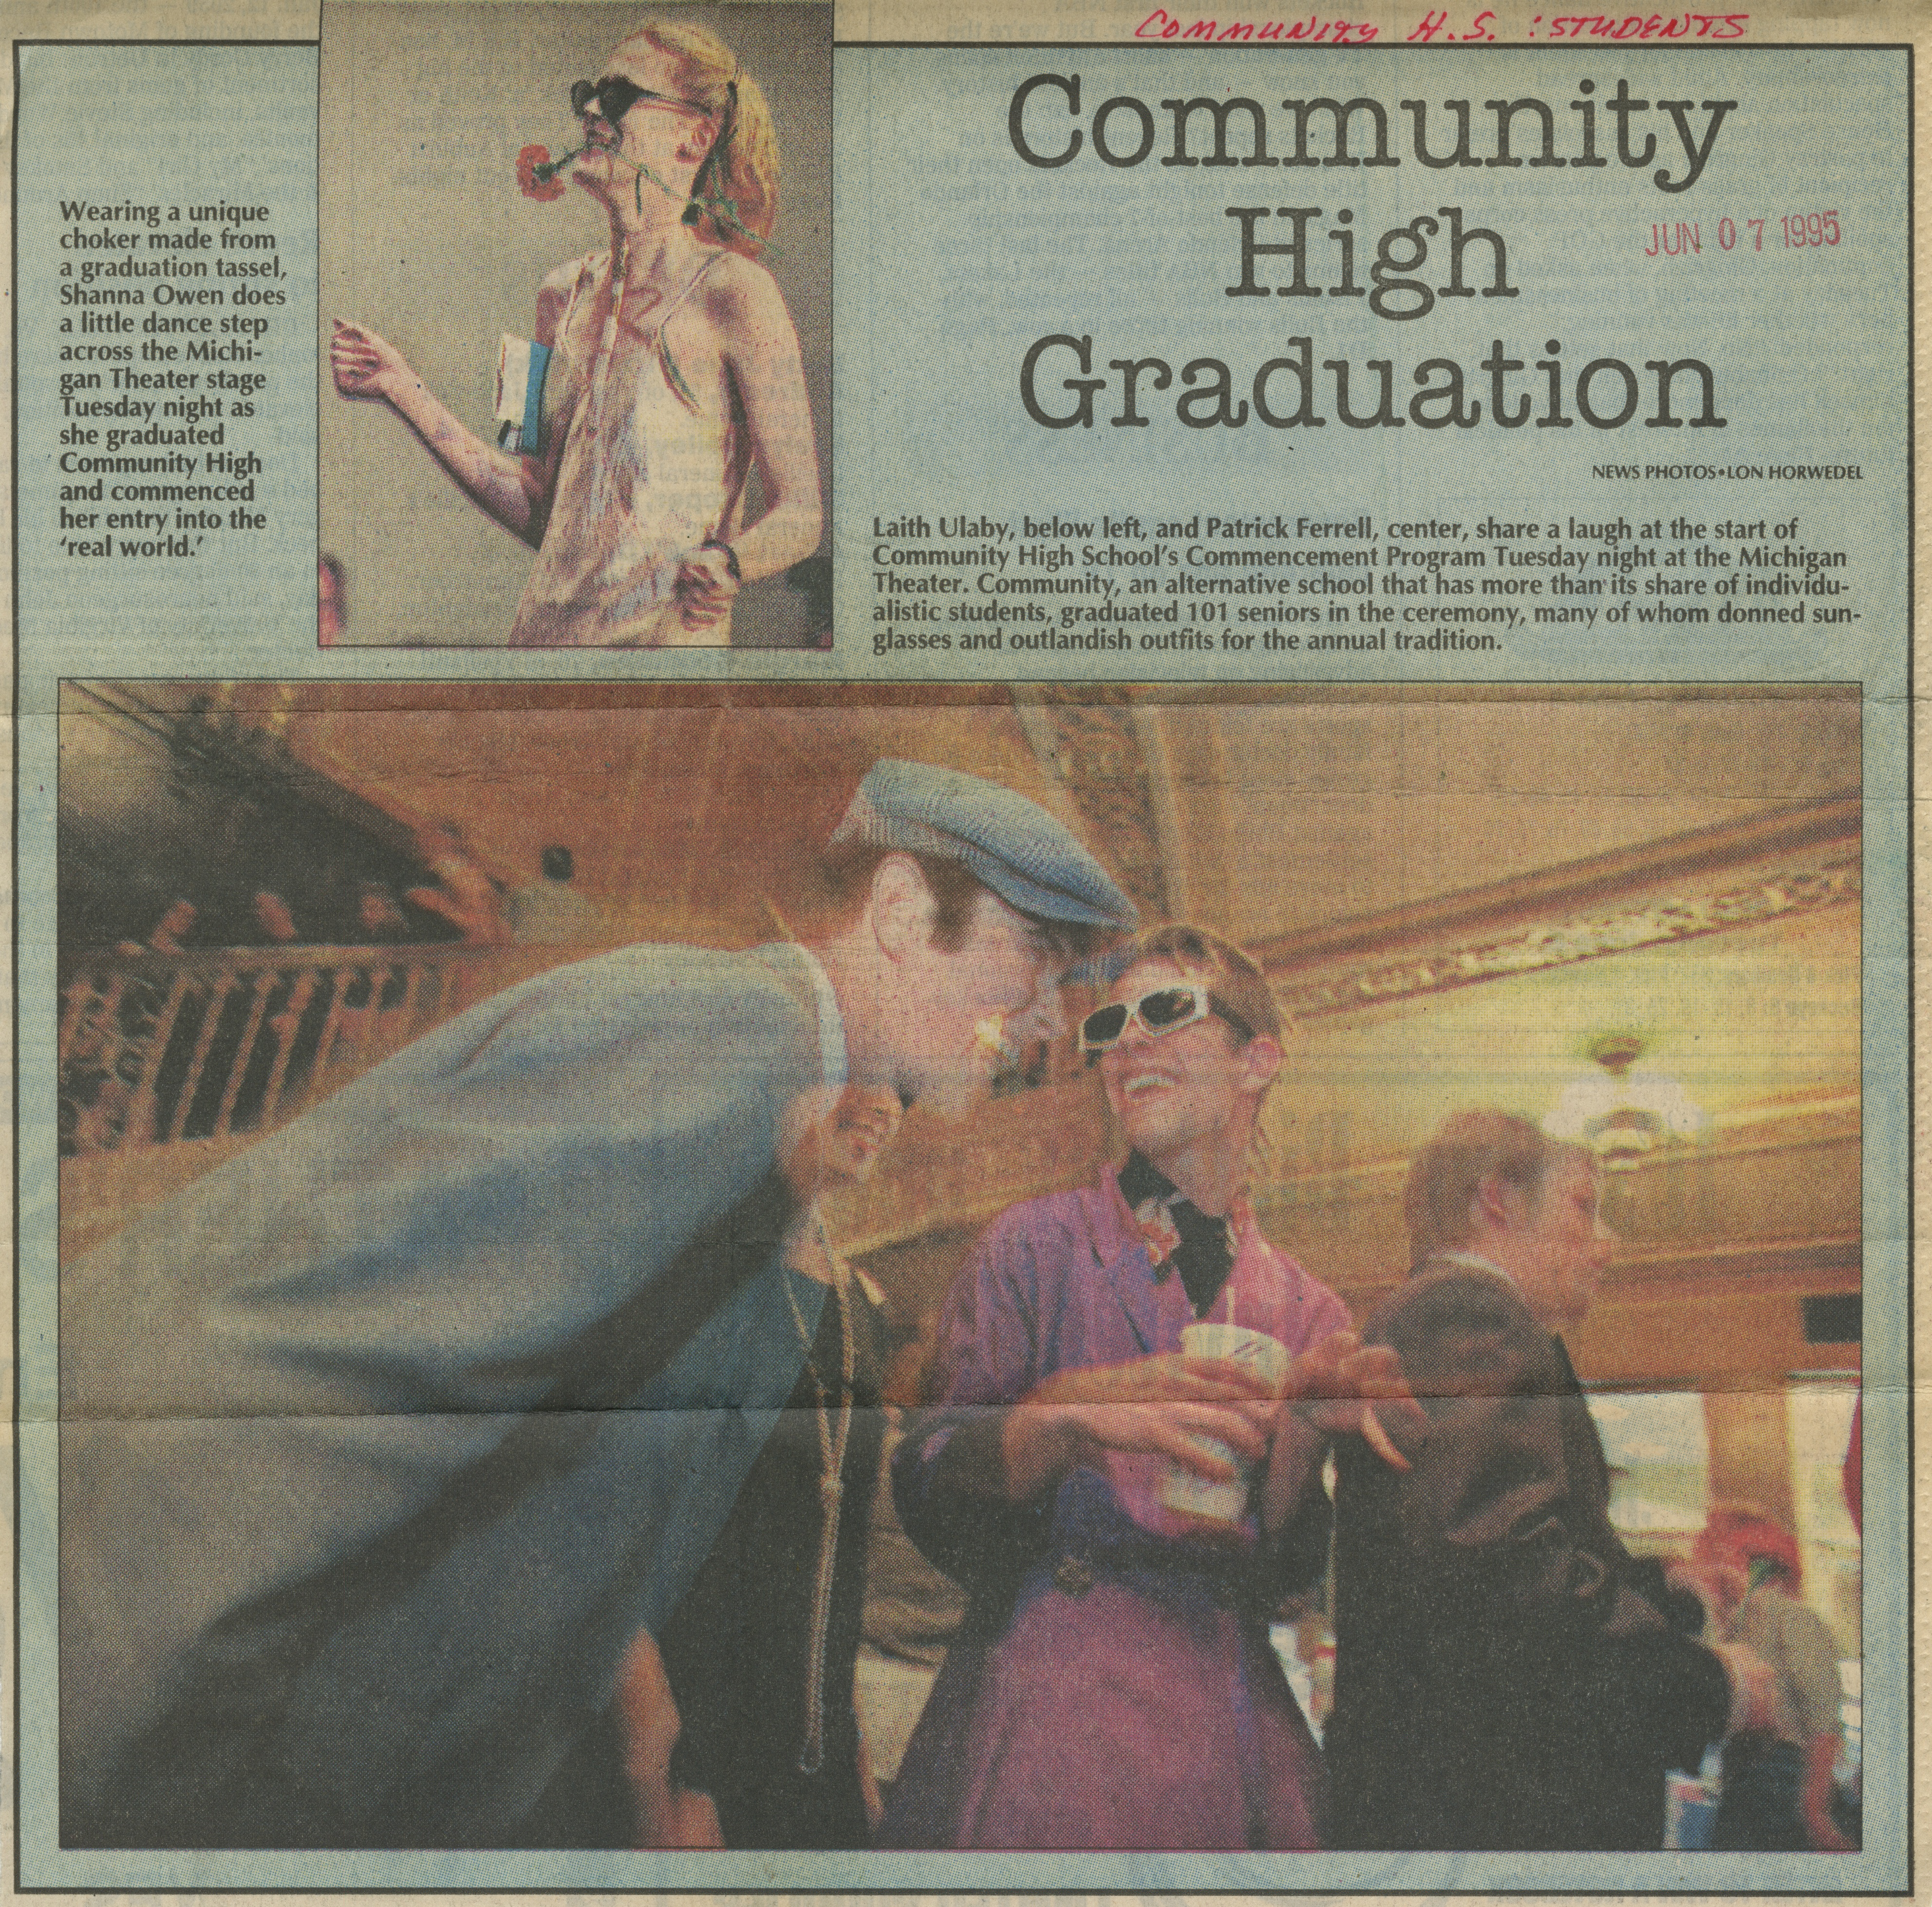 Community High Graduation image